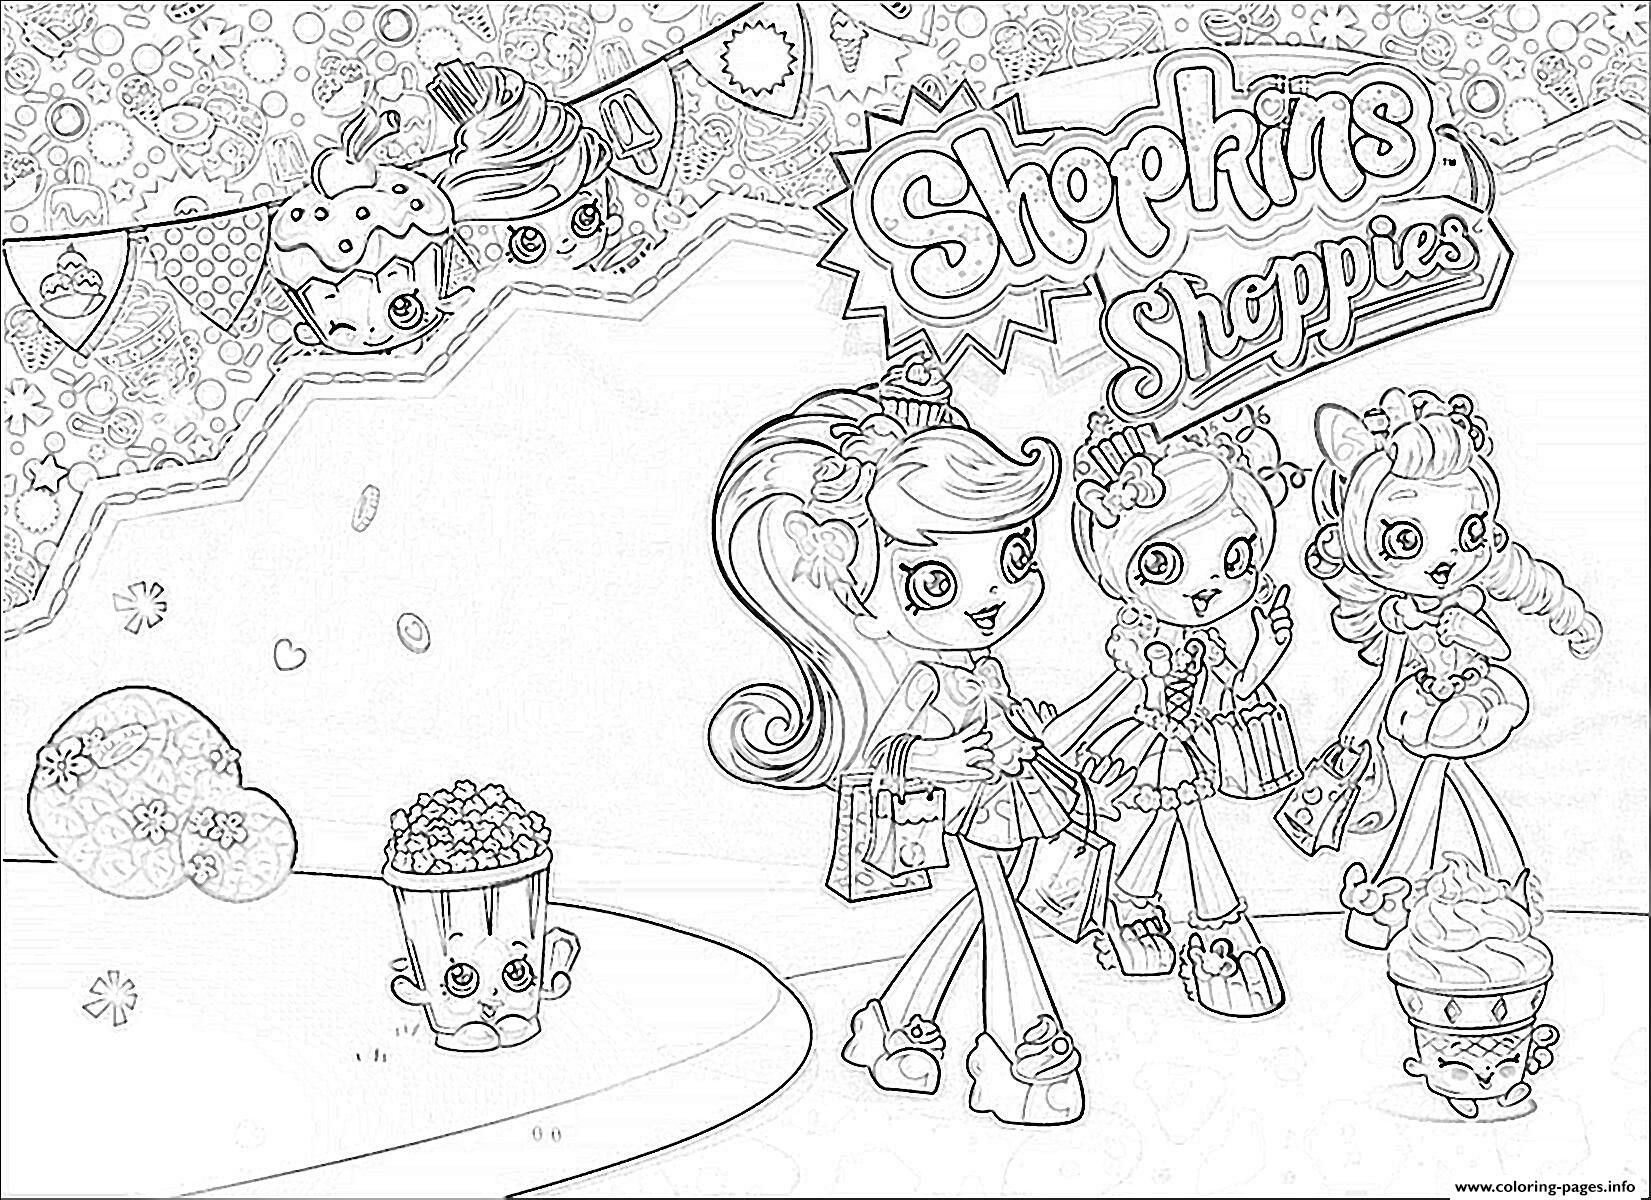 Sh shopkins coloring pages cupcake - Shopkins Shoppies Girls Coloring Pages Printable And Coloring Book To Print For Free Find More Coloring Pages Online For Kids And Adults Of Shopkins